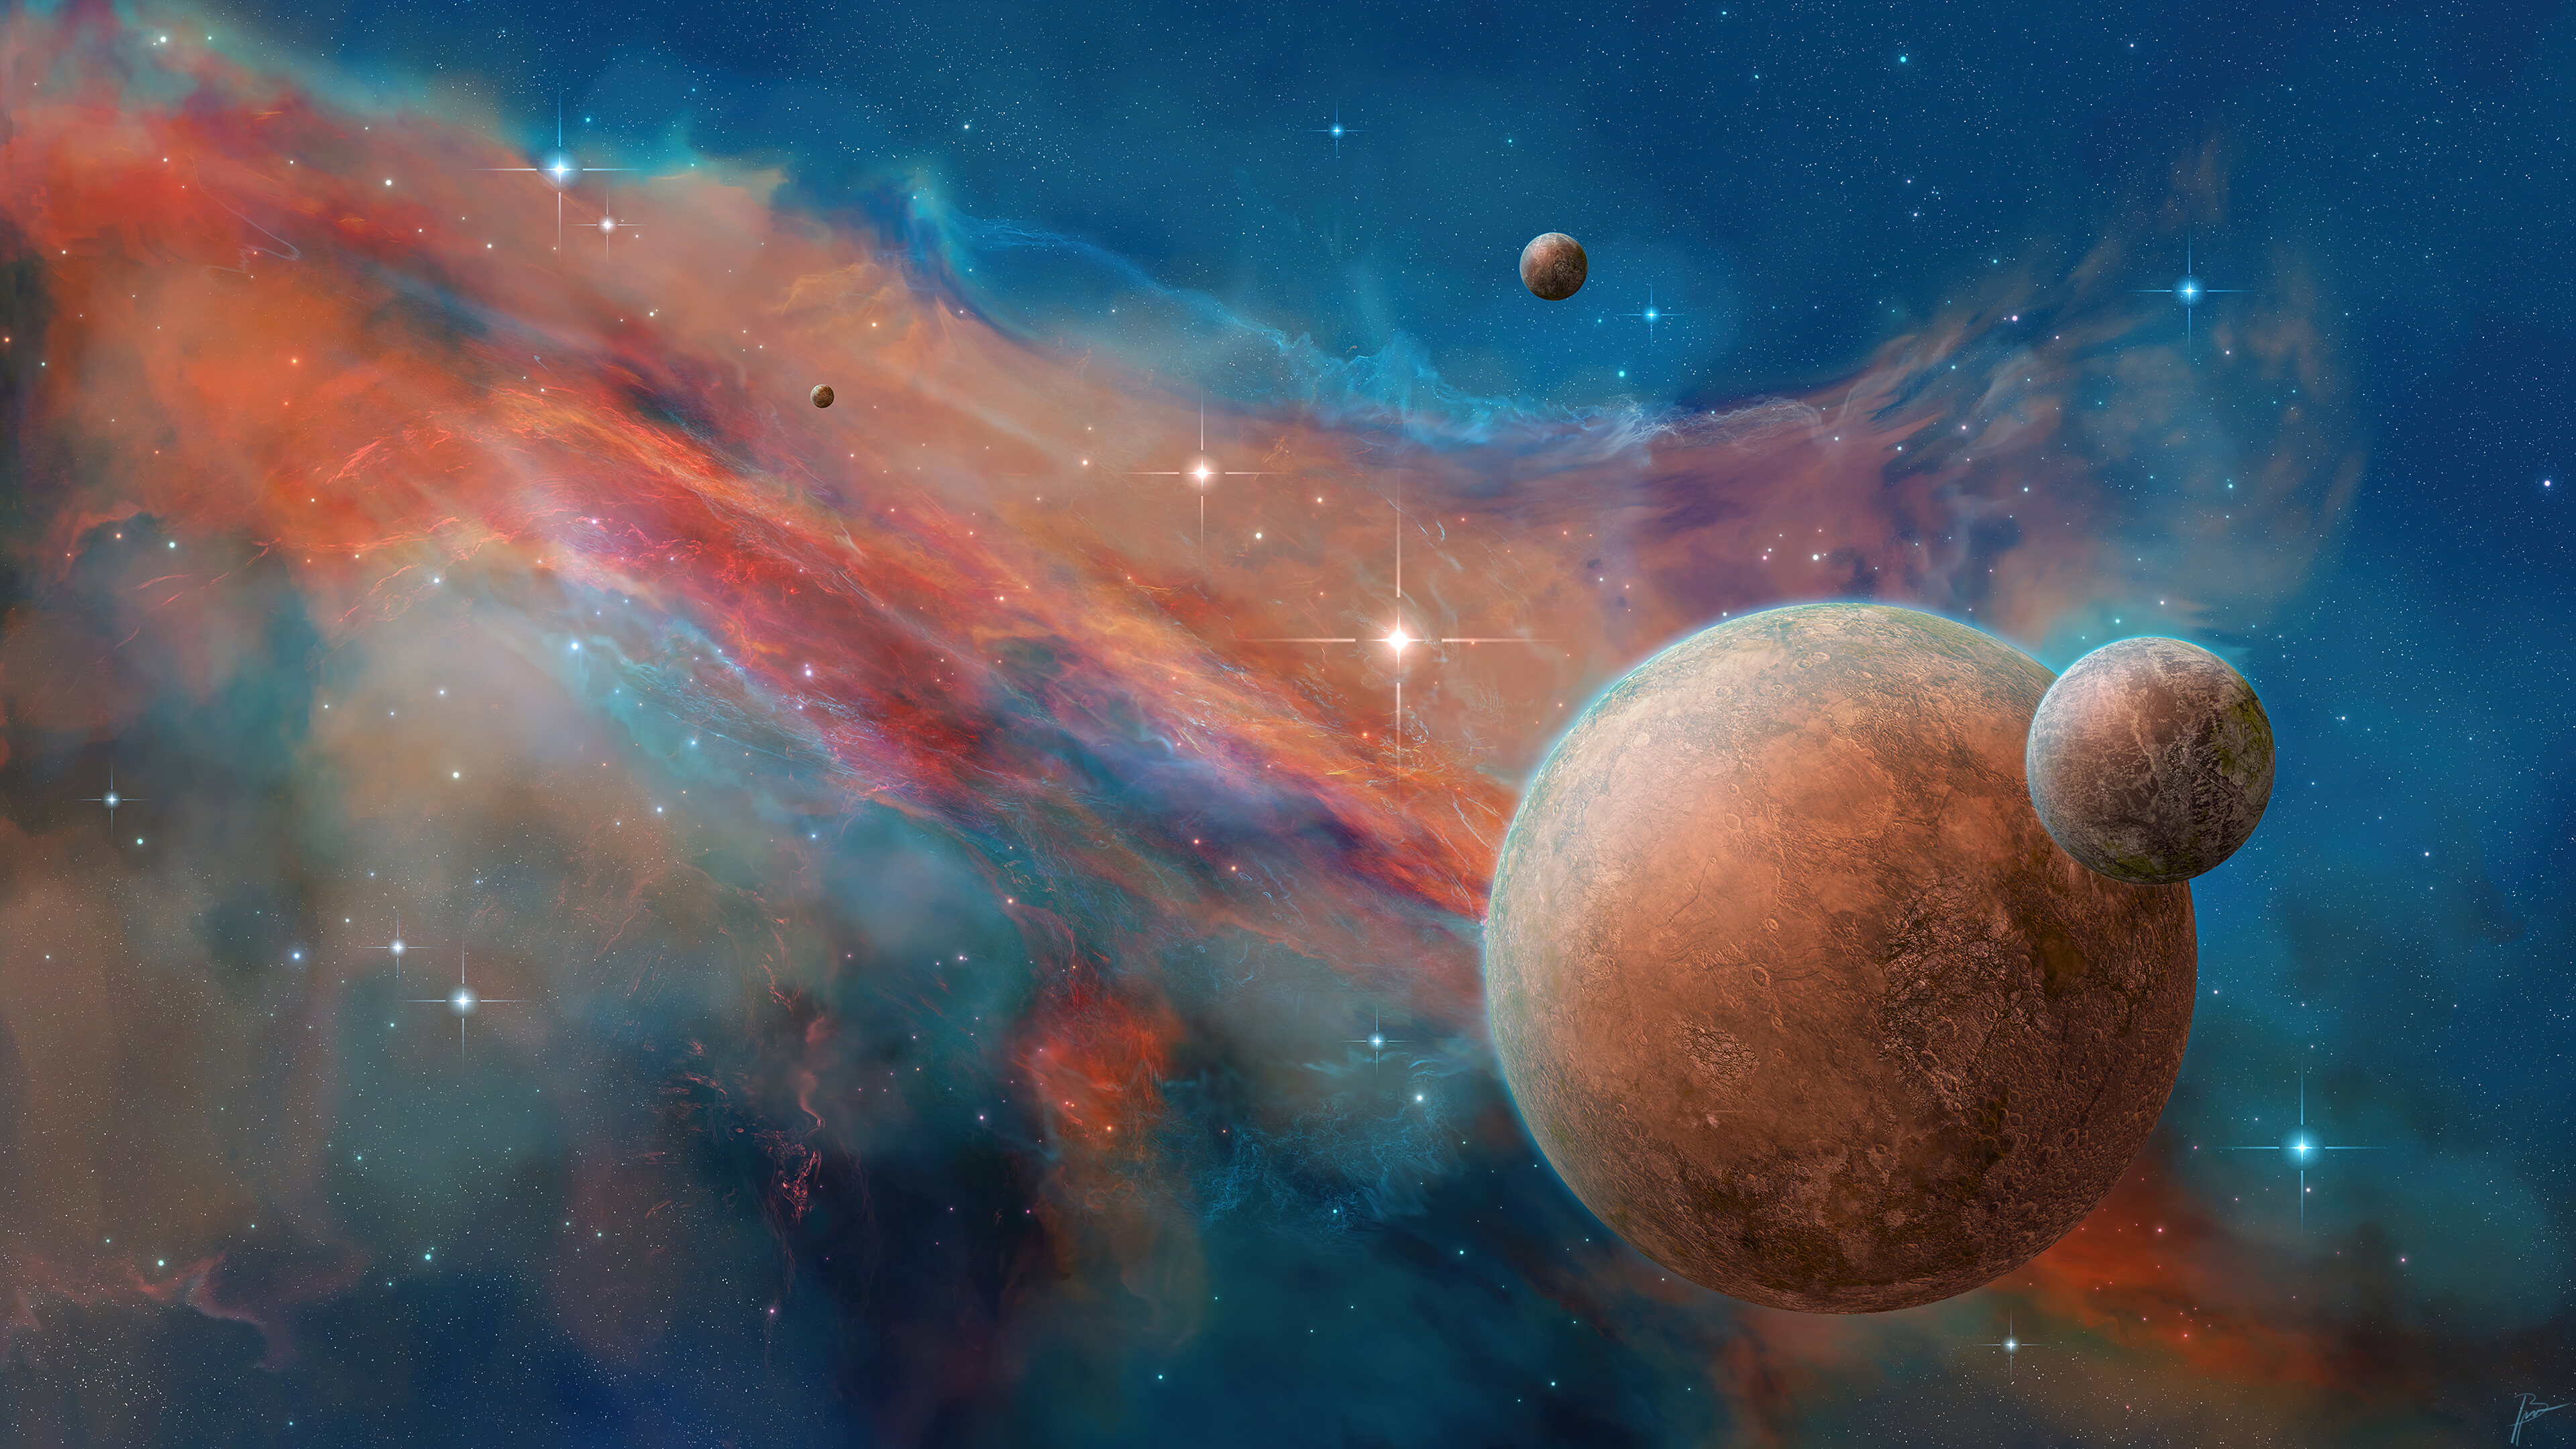 Wallpaper Planets in space with nebulas